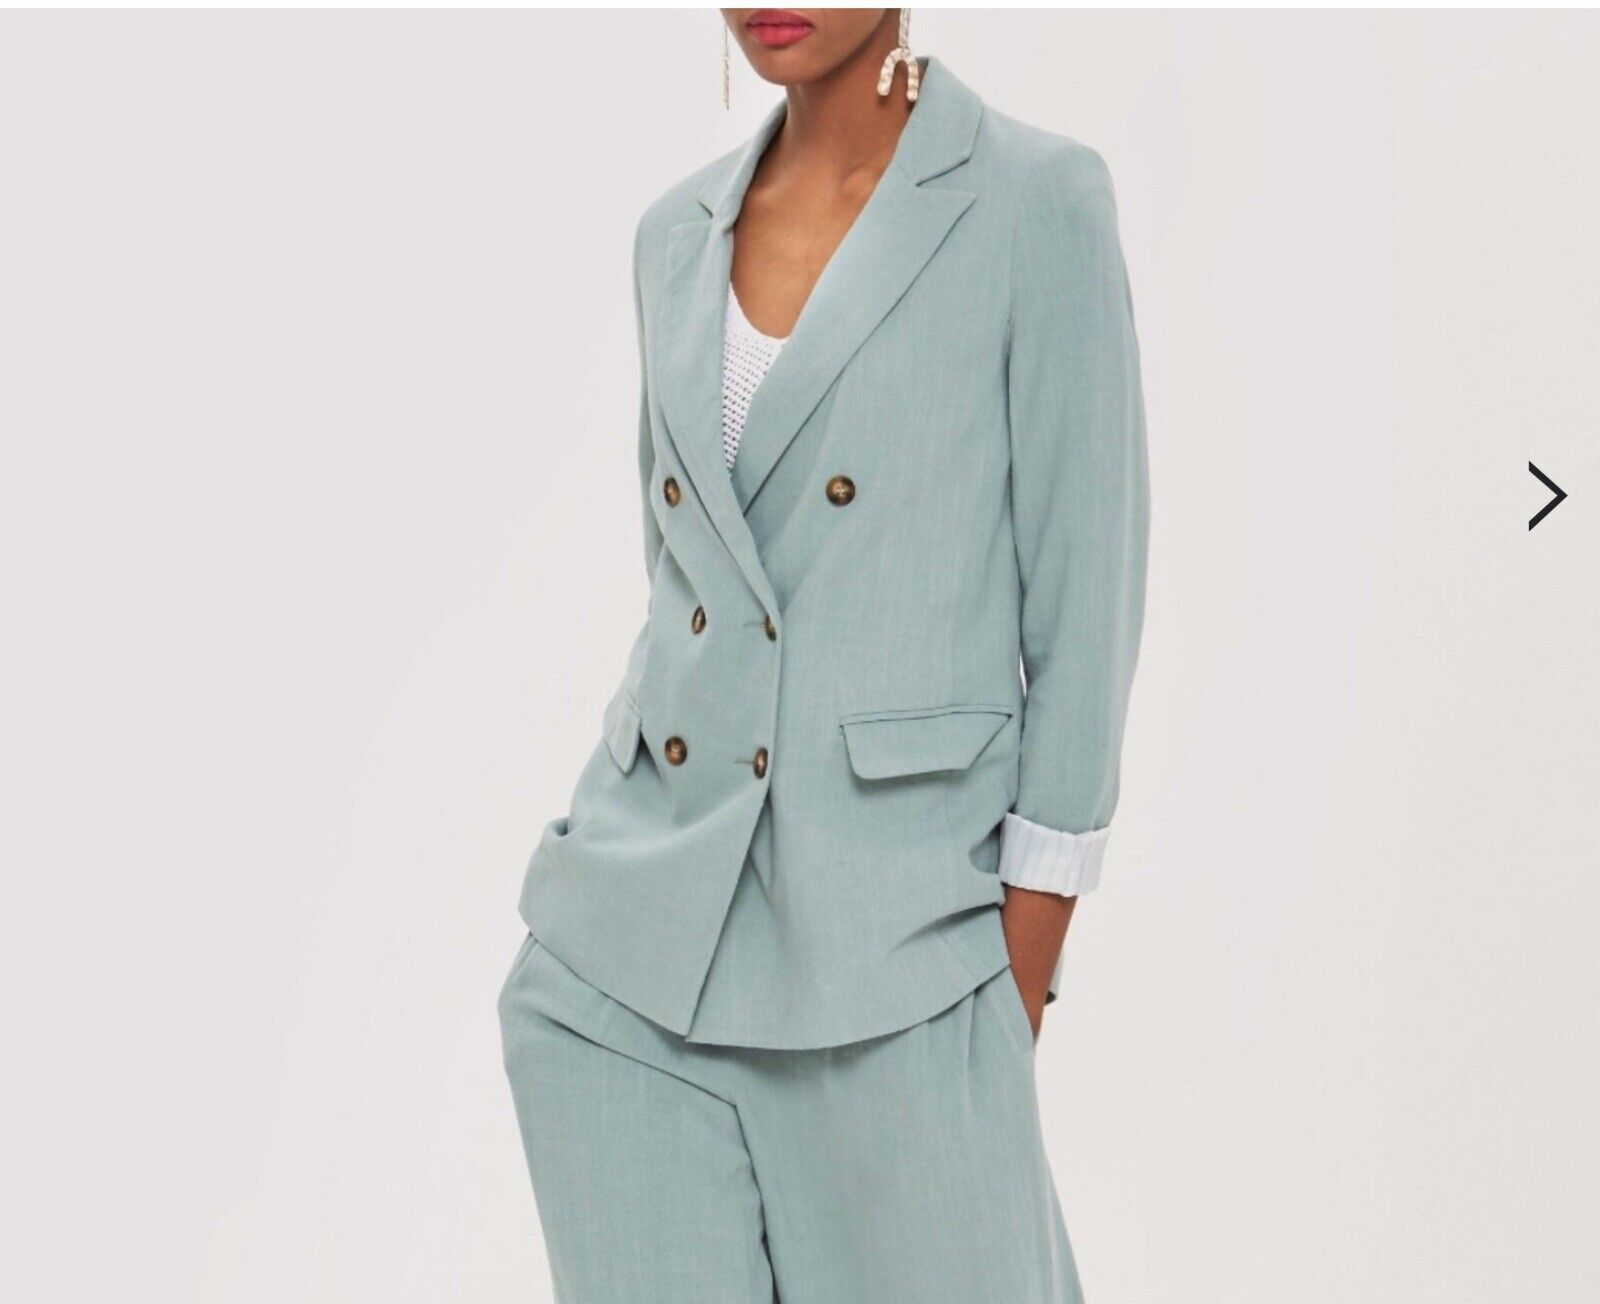 hautshop Double Breasted Linen Blazer Taille UK 4 sold out